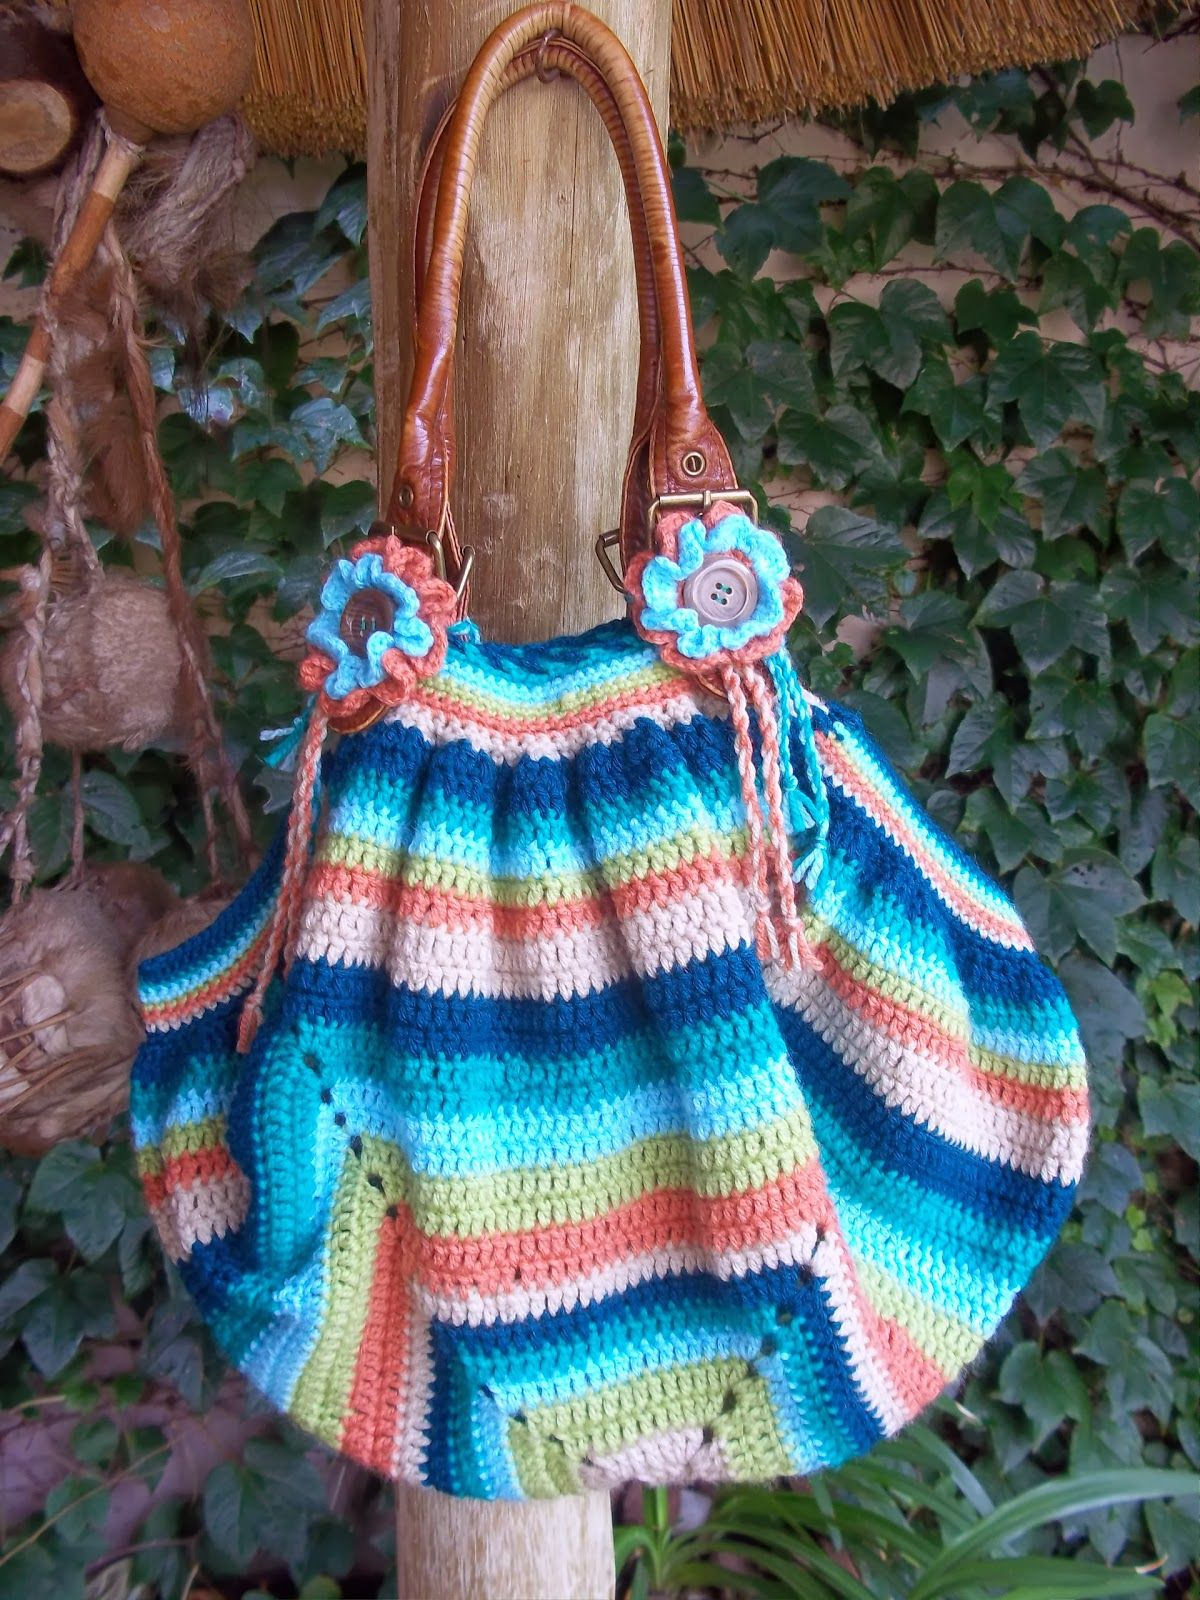 giant granny square bag ~ free pattern ᛡ | carteras | Pinterest ...